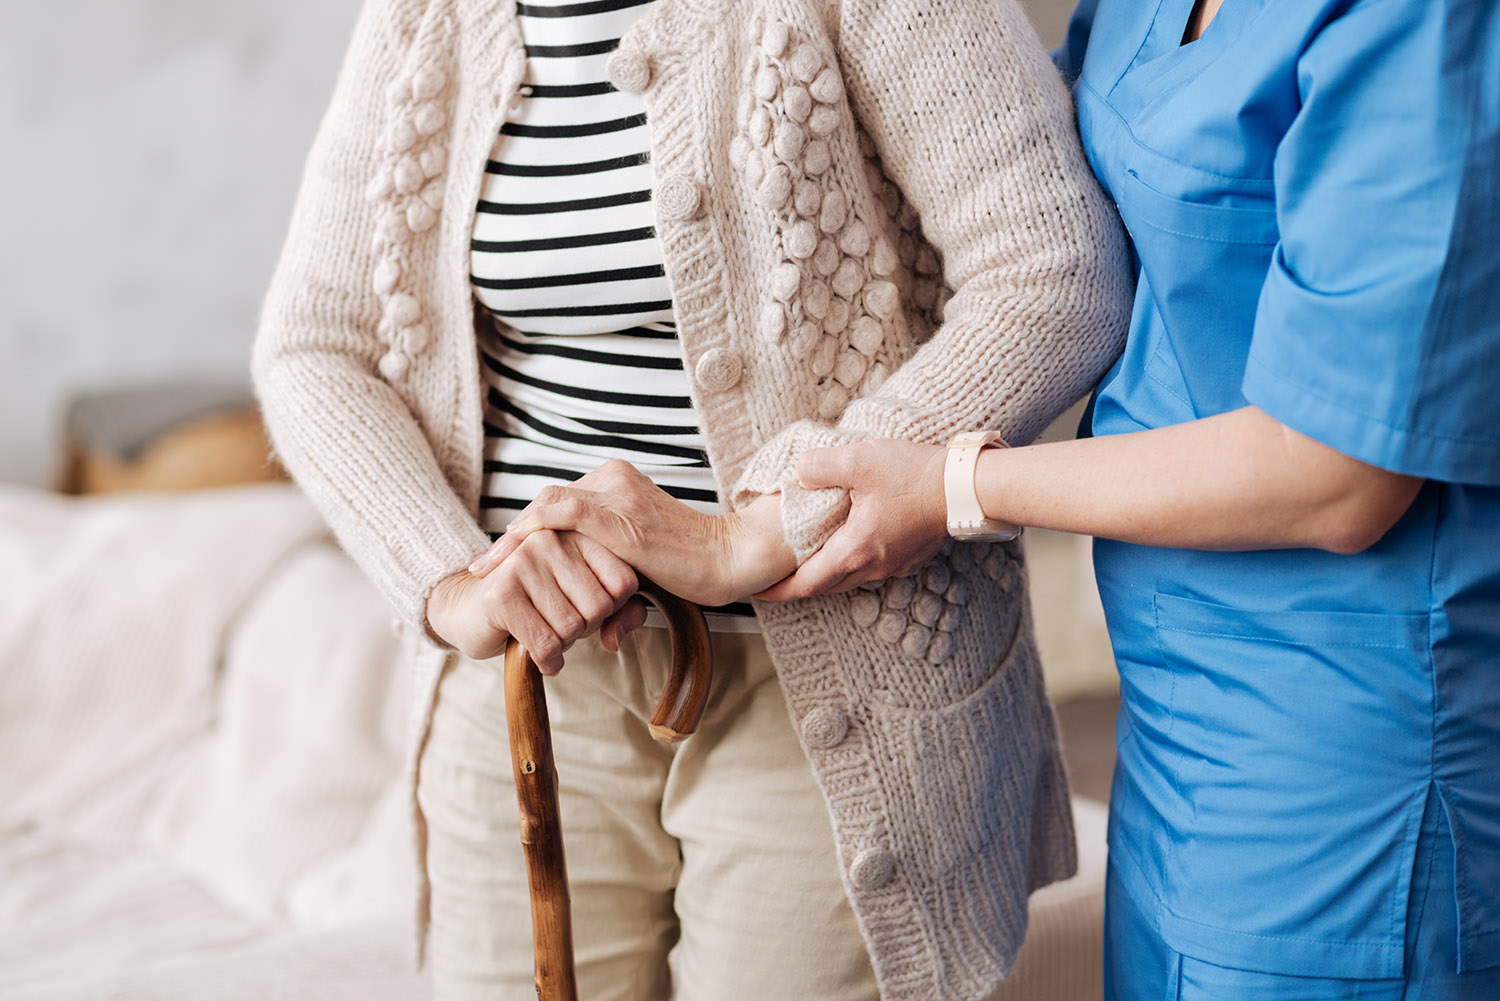 Nurse assisting elder woman with walking